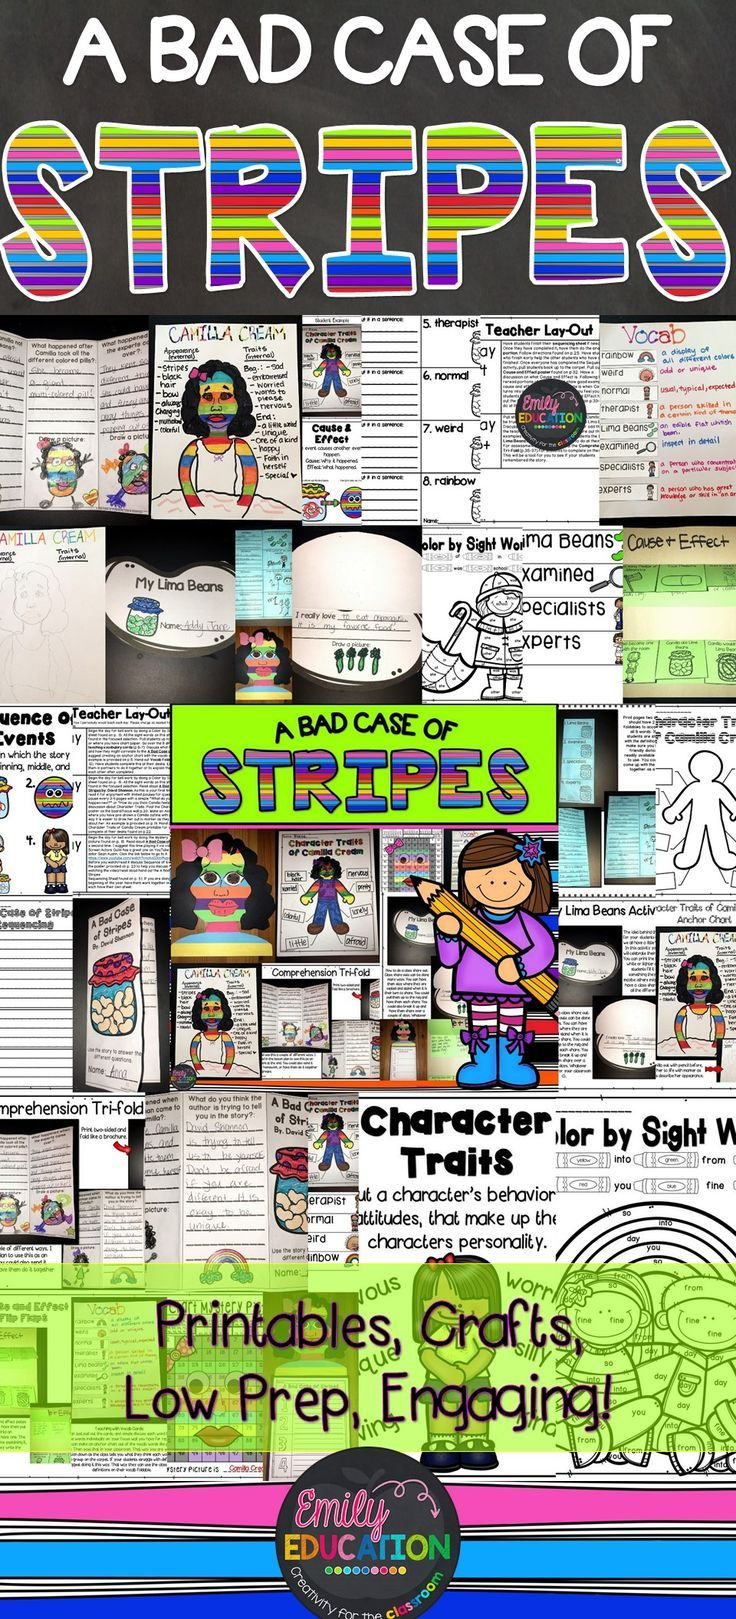 worksheet A Bad Case Of Stripes Worksheets 1000 ideas about david shannon activities on pinterest no a bad case of stripes by complete book study great for